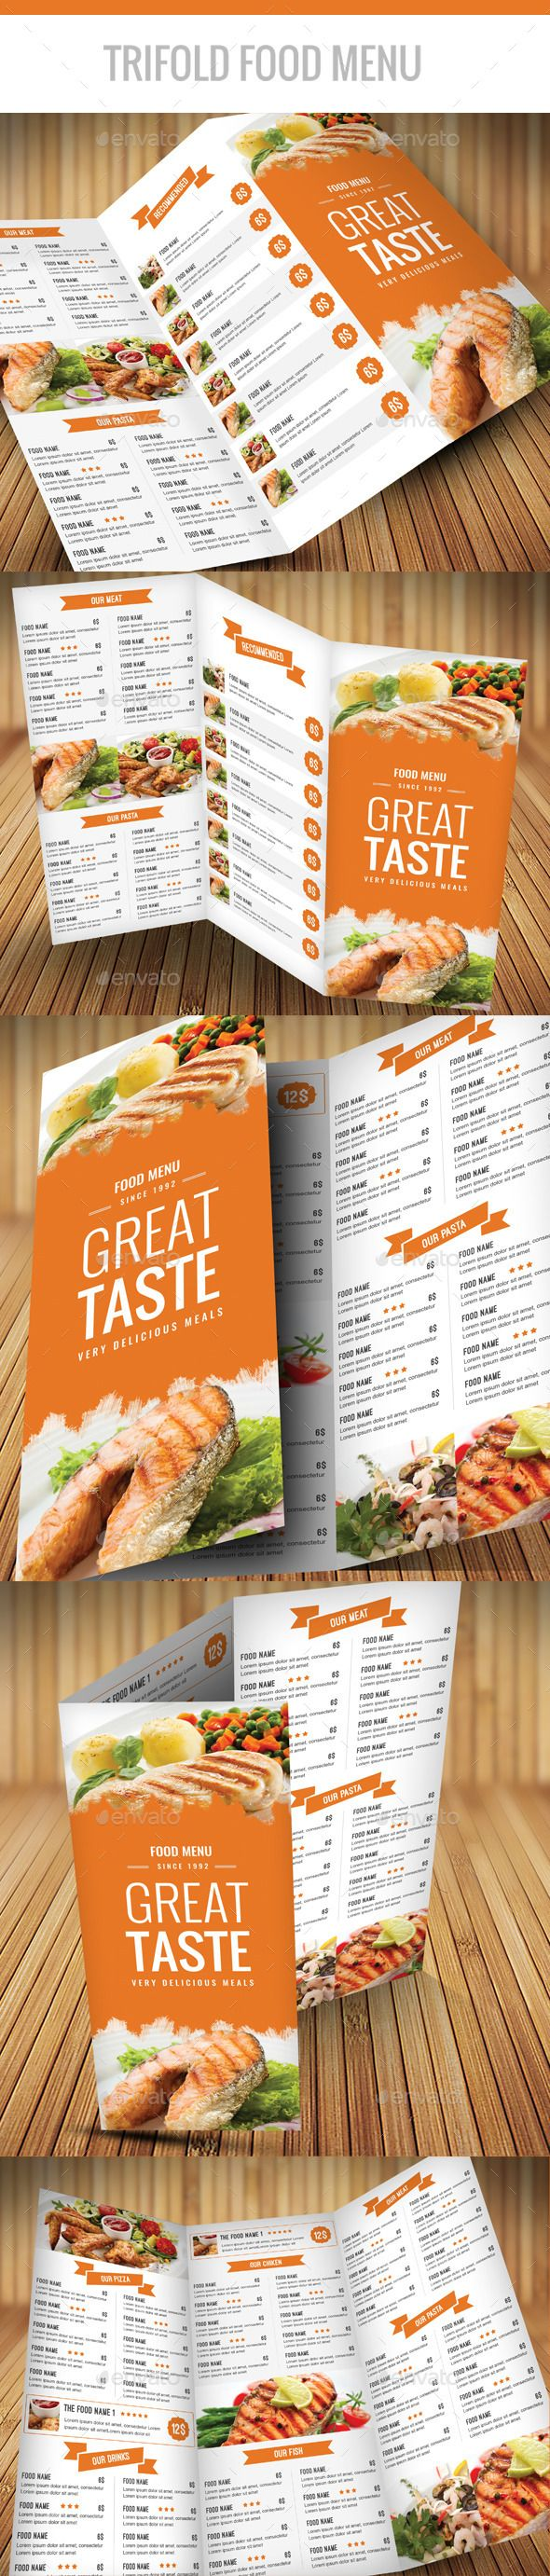 Trifold food menu a4 photoshop psd flyer menu templates trifold food menu a4 photoshop psd flyer menu templates available here pronofoot35fo Choice Image